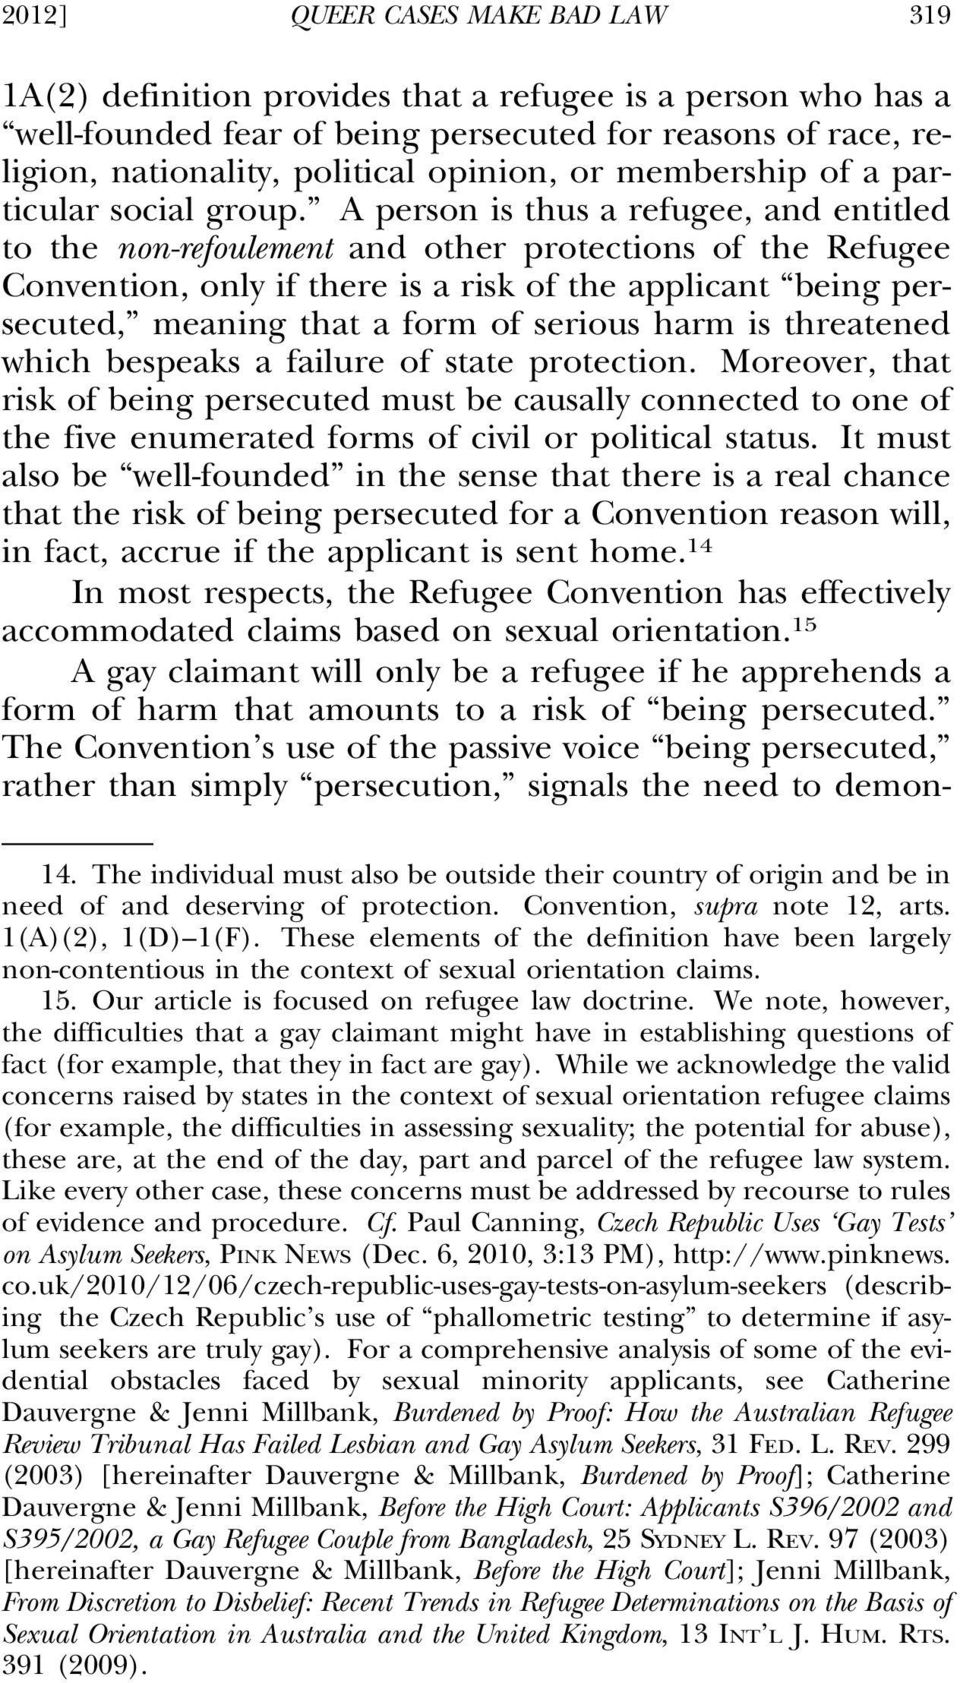 A person is thus a refugee, and entitled to the non-refoulement and other protections of the Refugee Convention, only if there is a risk of the applicant being persecuted, meaning that a form of